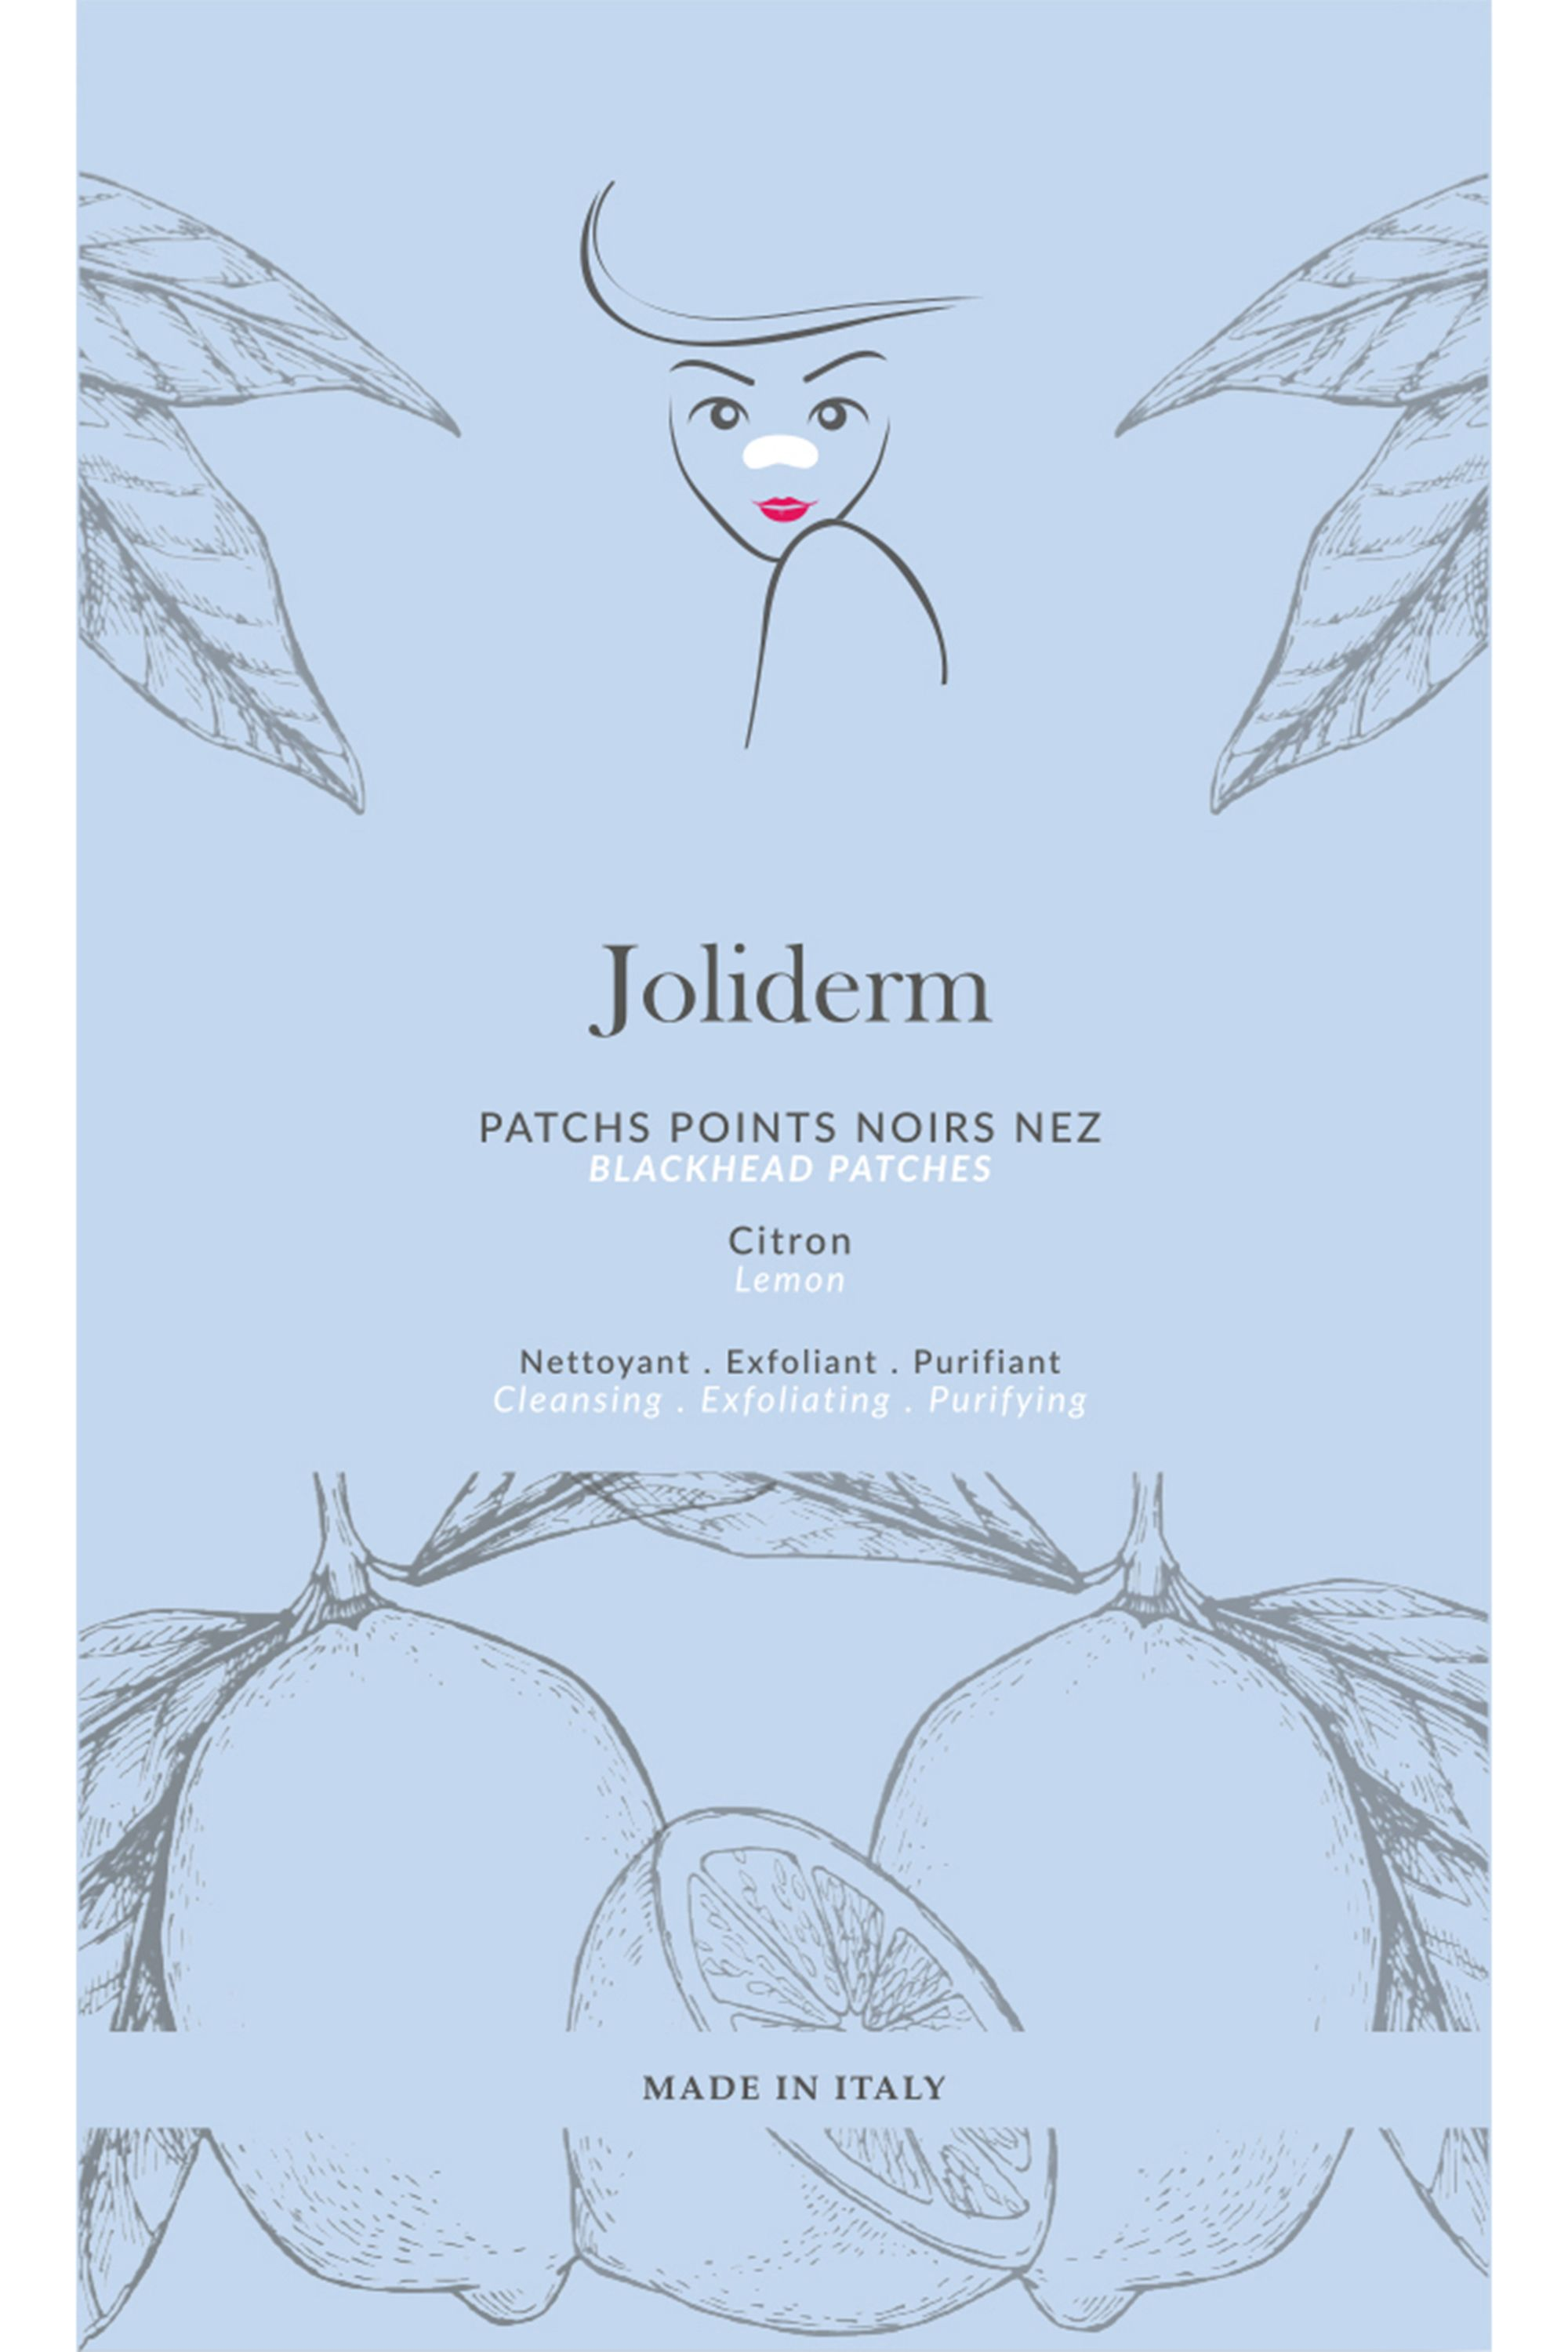 Blissim : Joliderm - Patchs points noirs nez - Patchs points noirs nez